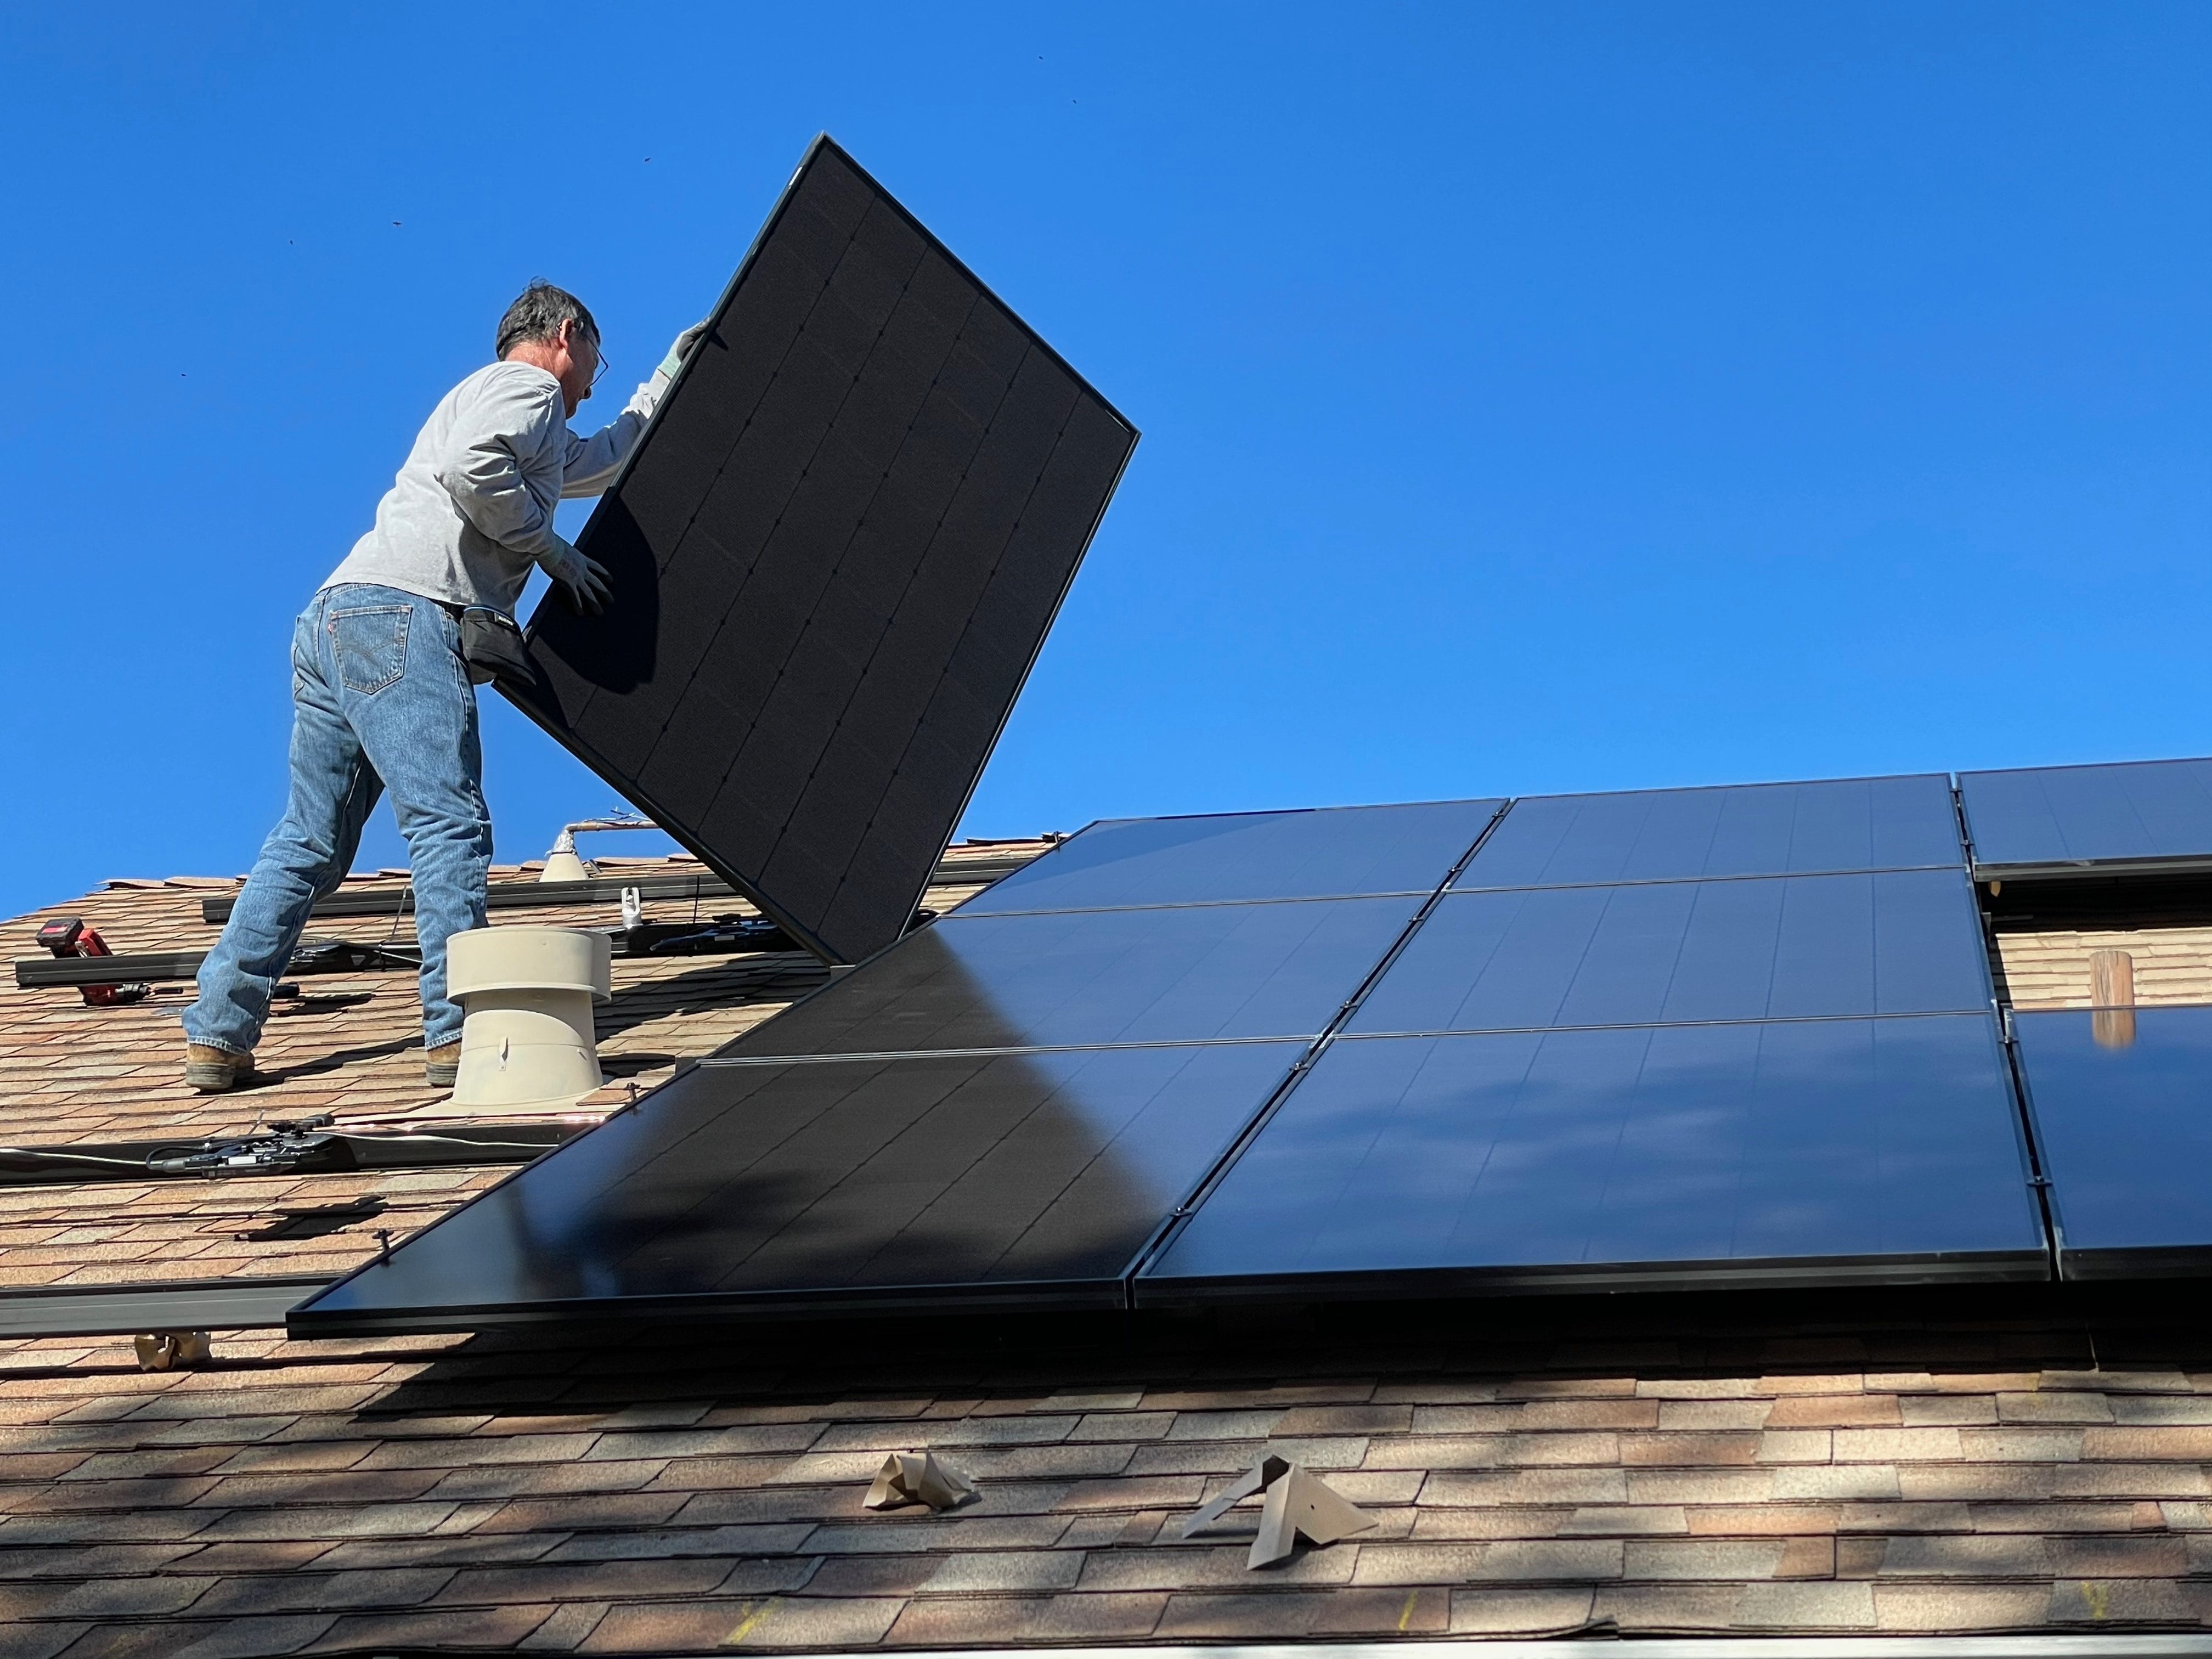 Worker installing solar panels on a roof